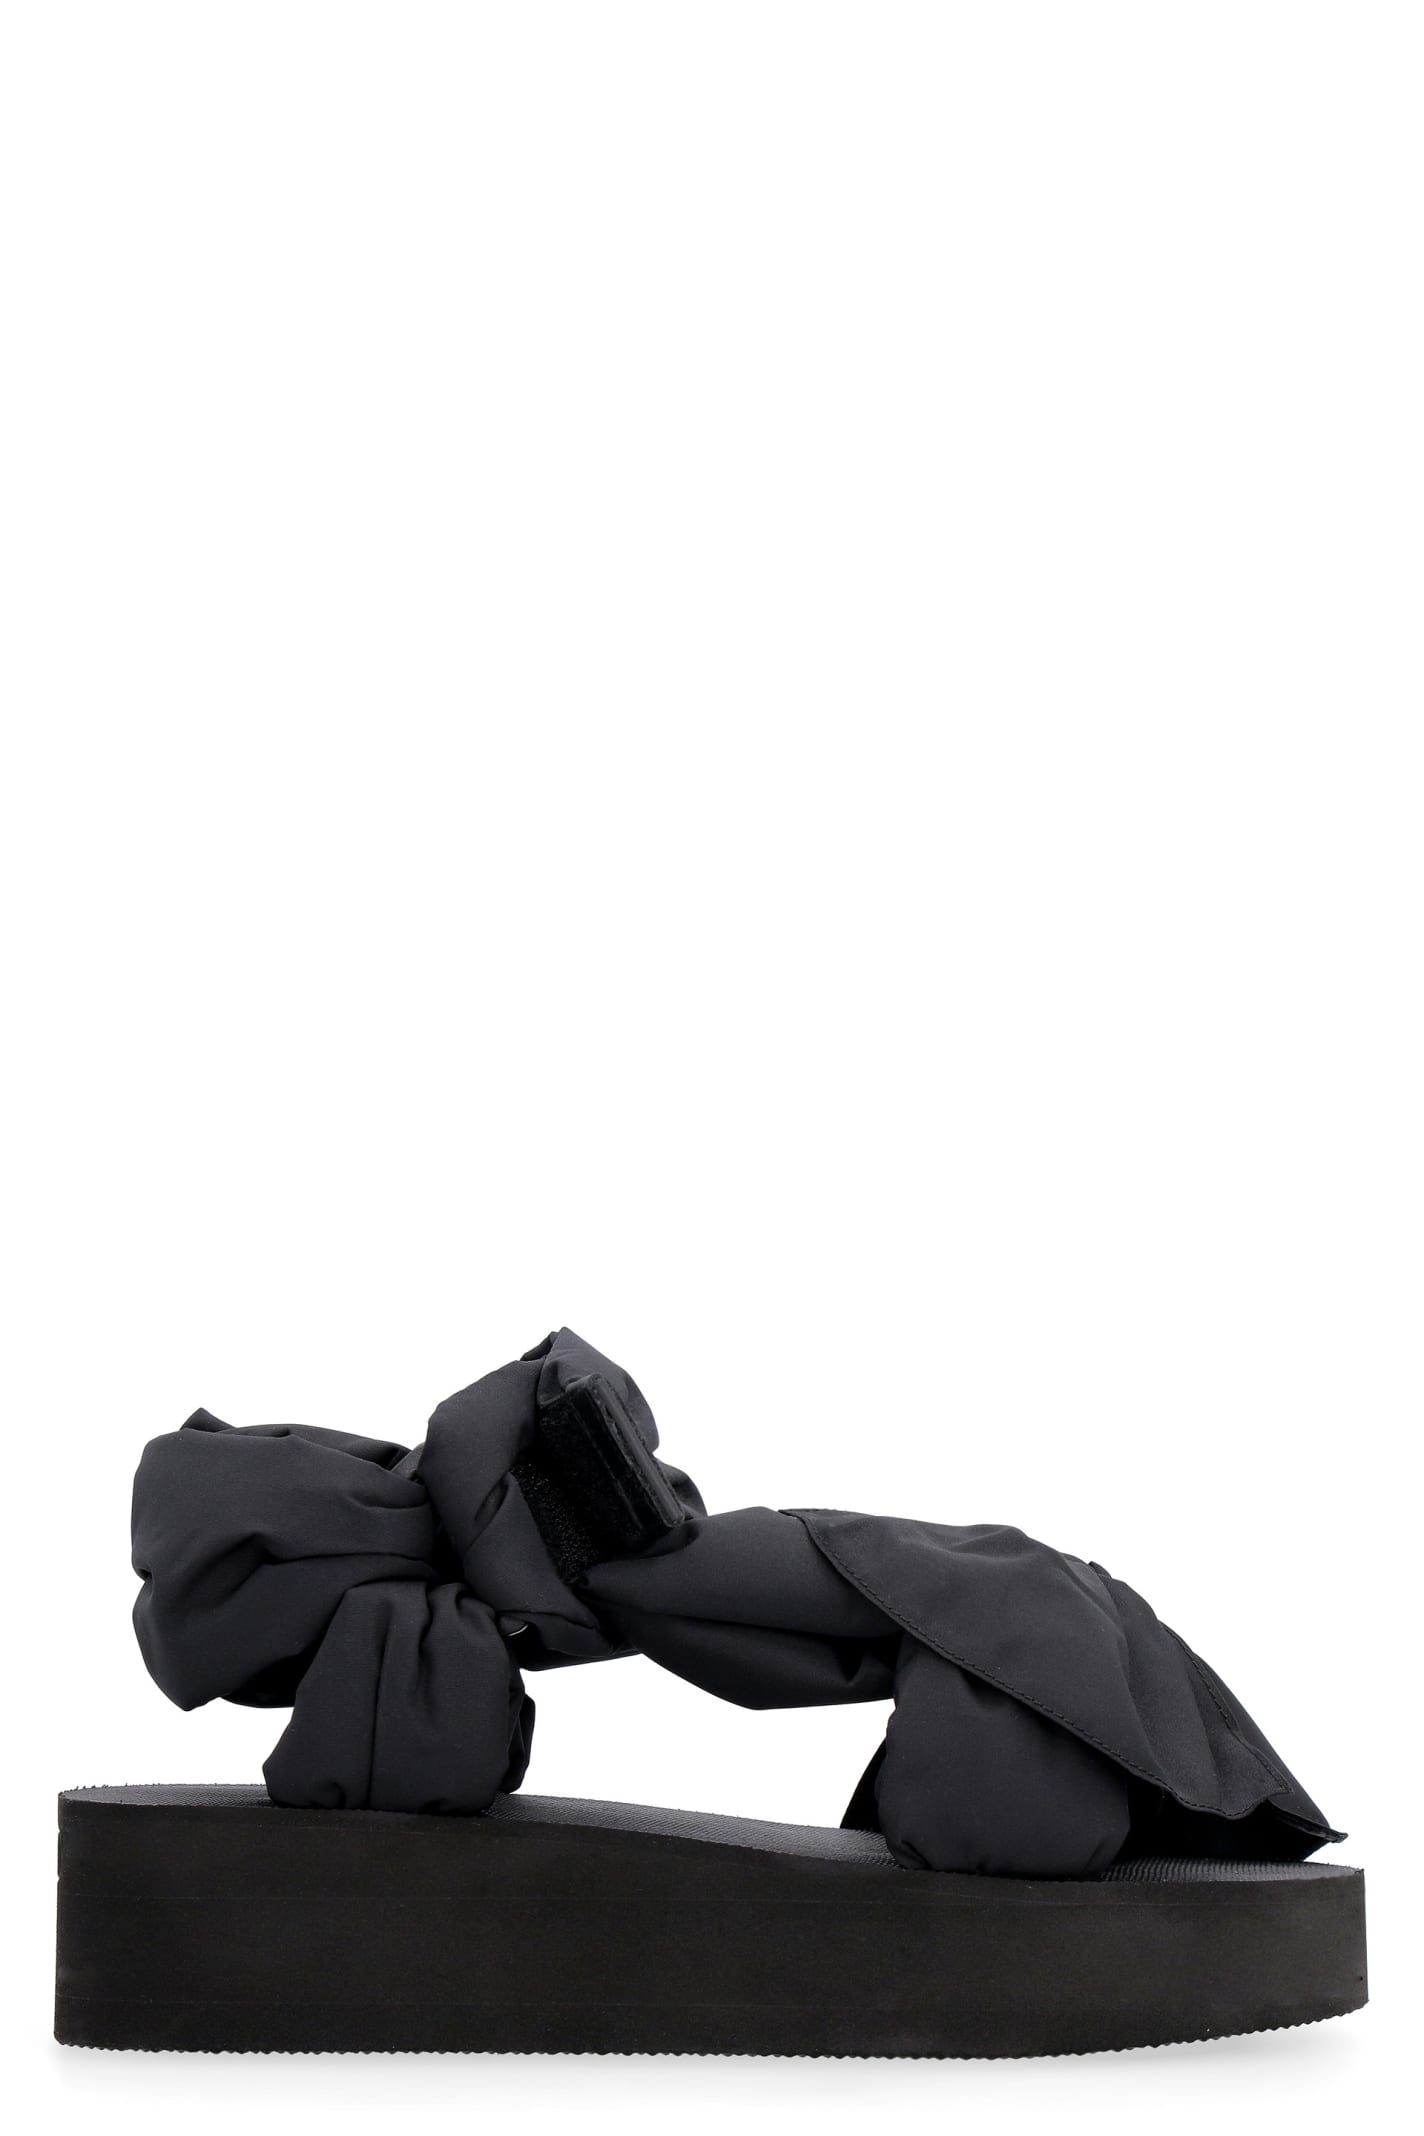 Buy RED Valentino Bow Detail Sandals online, shop RED Valentino shoes with free shipping